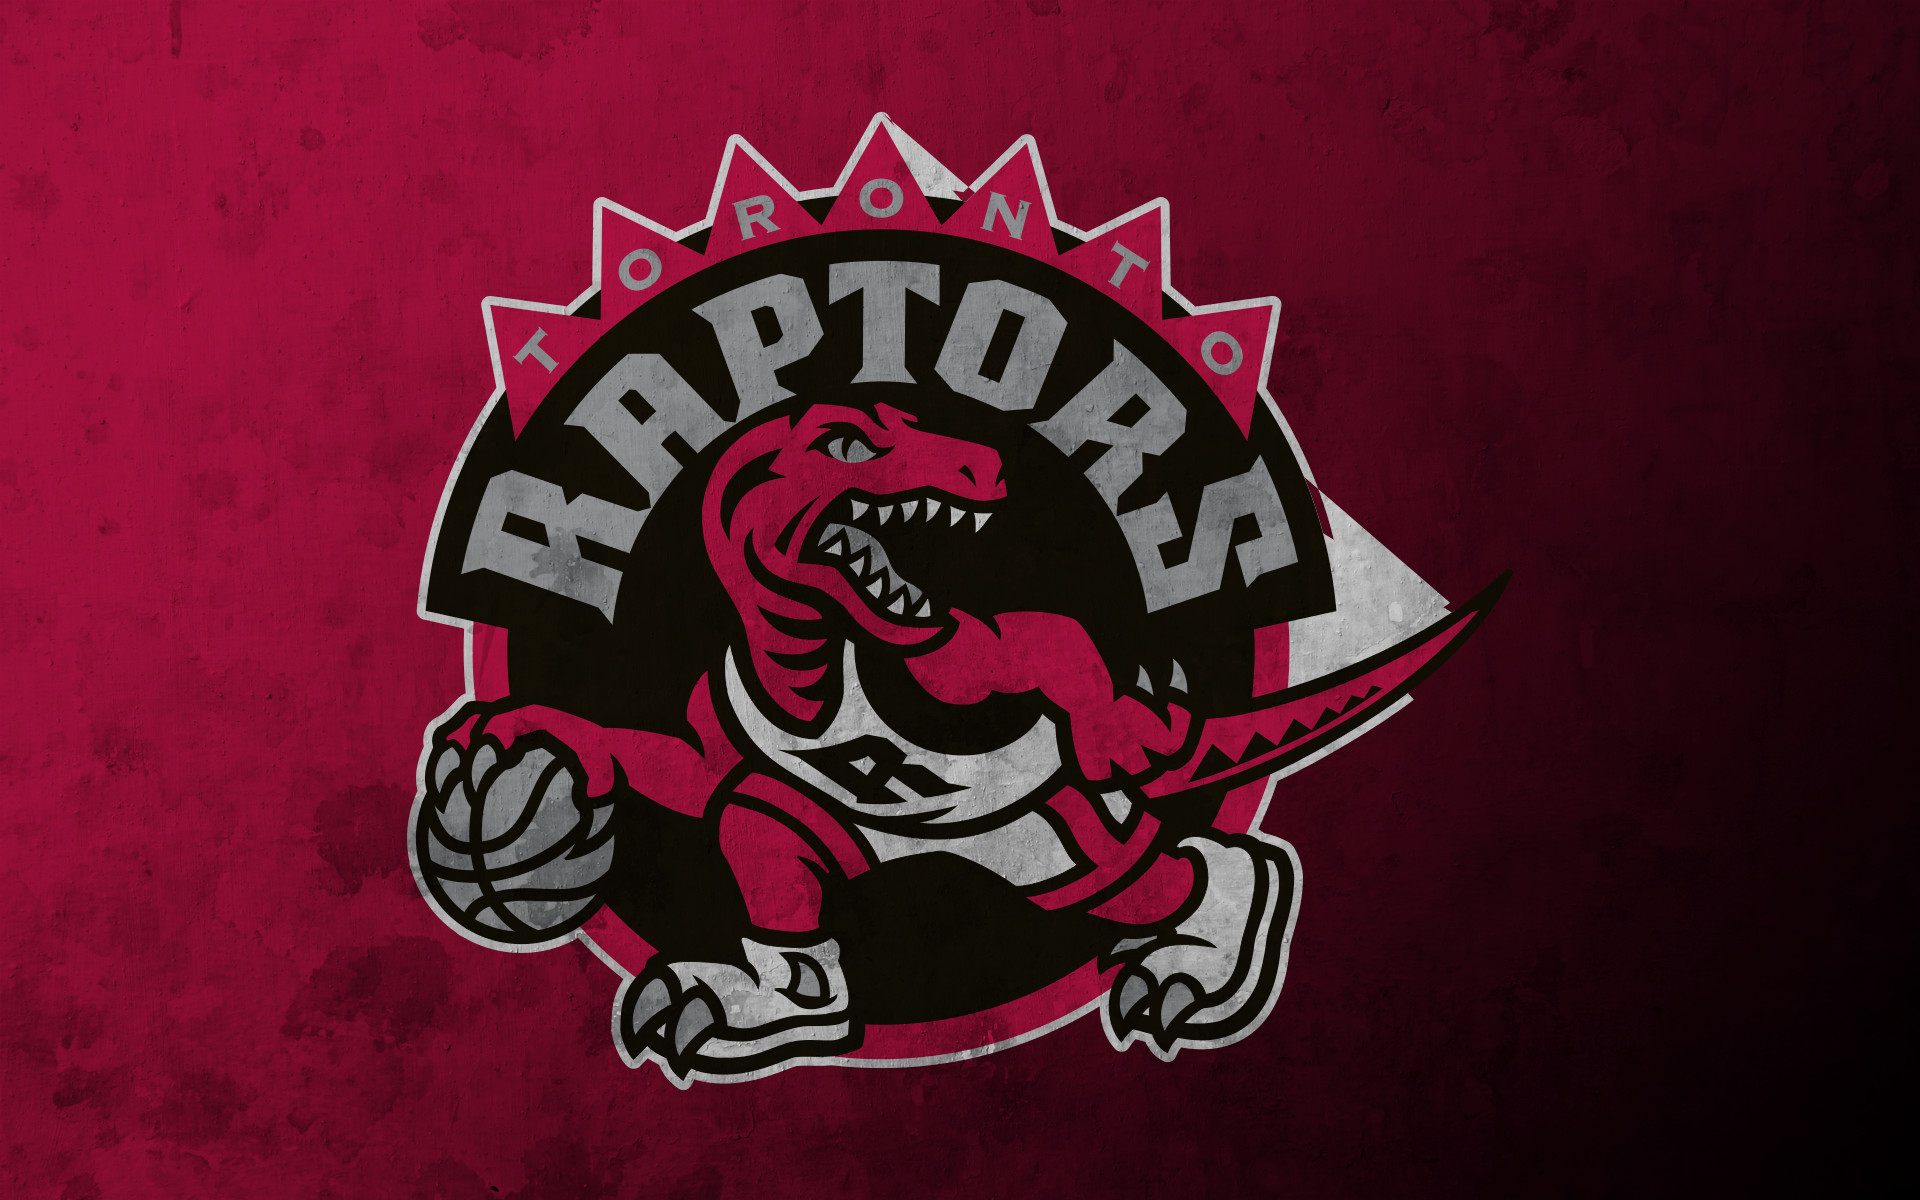 1920x1200 ... Leafs wallpaper and here's a Raptors one that I, uh, never got around  to fixing the whitespace issues on. Give me a day if anyone's interested on  that ...